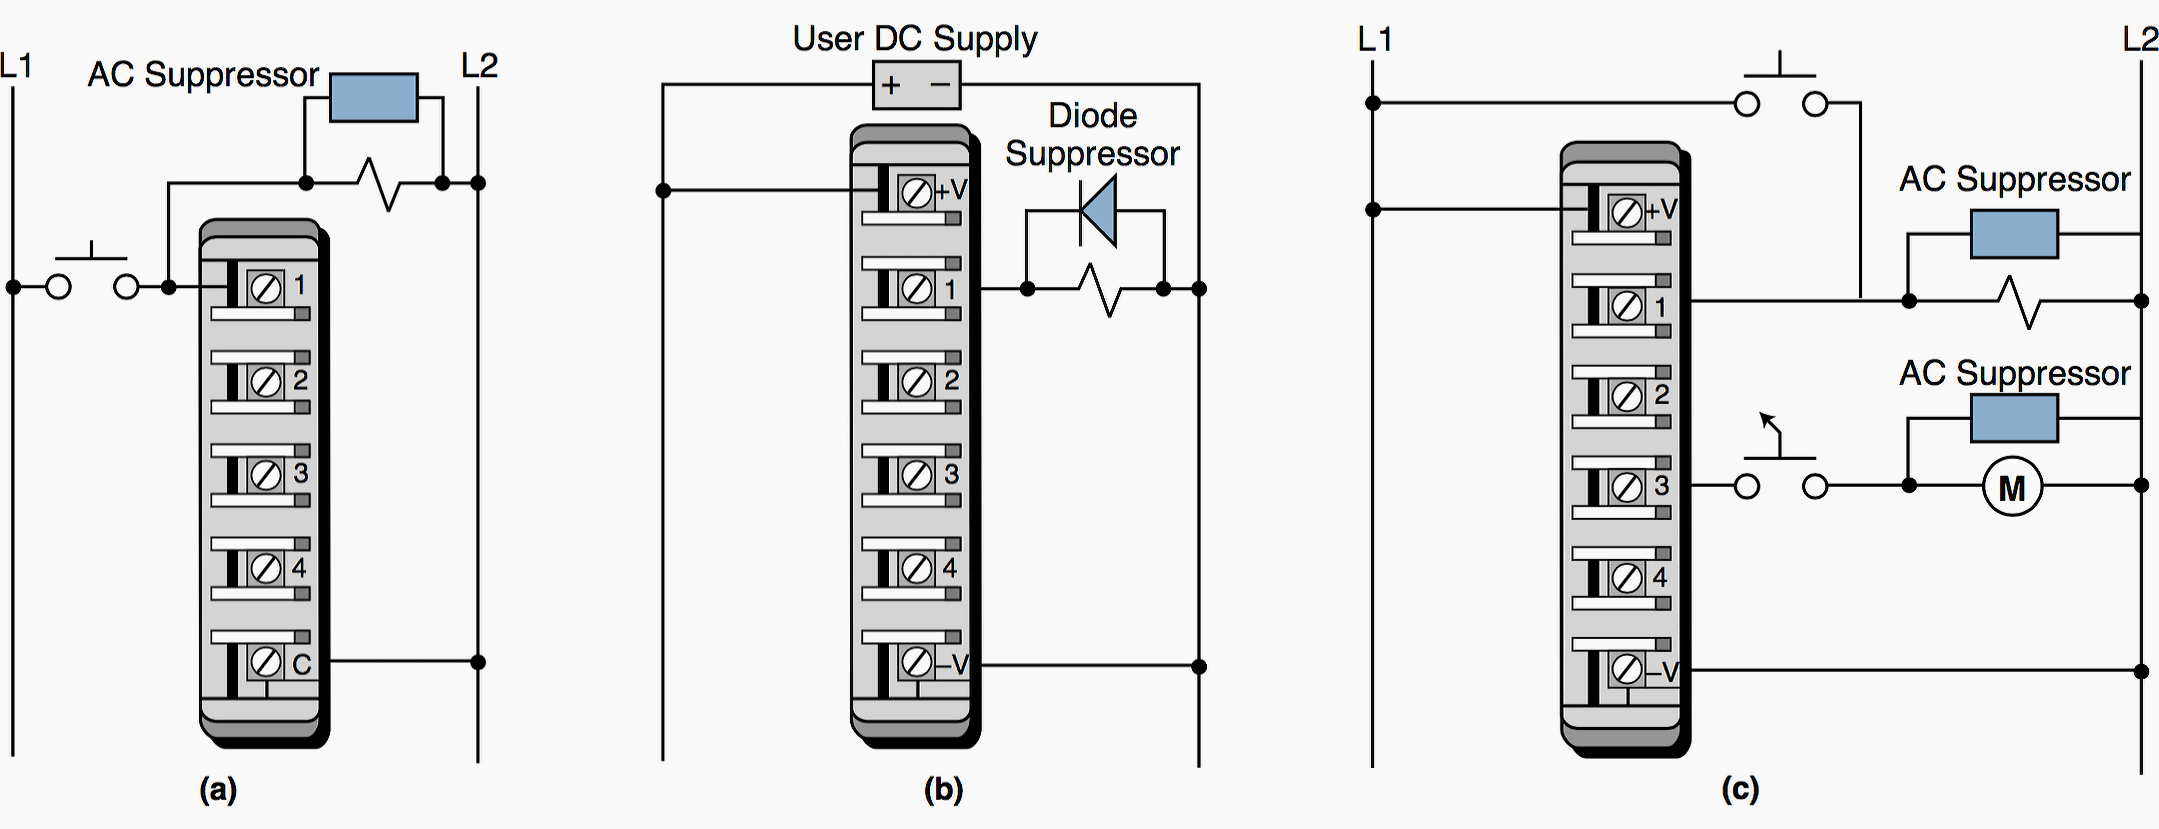 plc wiring diagram vfd guidelines for installation and connection